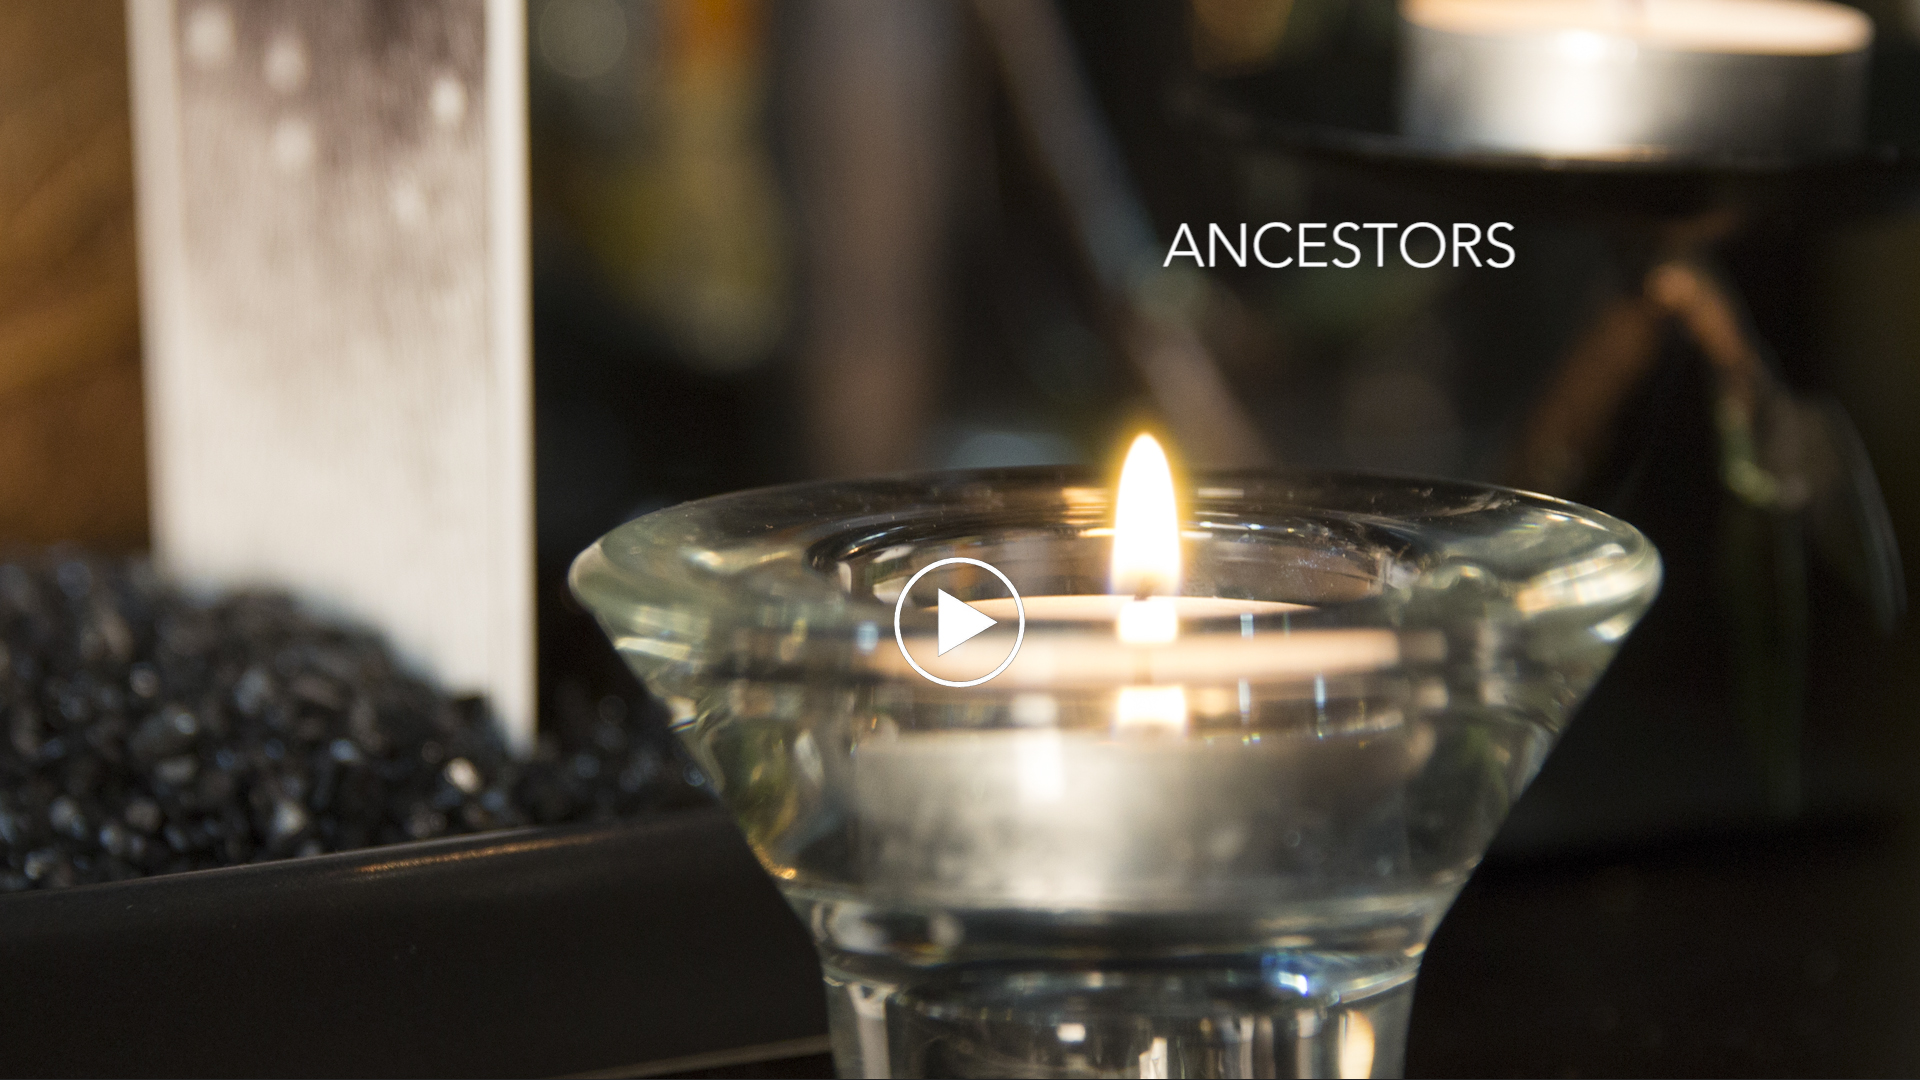 Infused.tv - Ancestors (Episode 1 - Course2 )